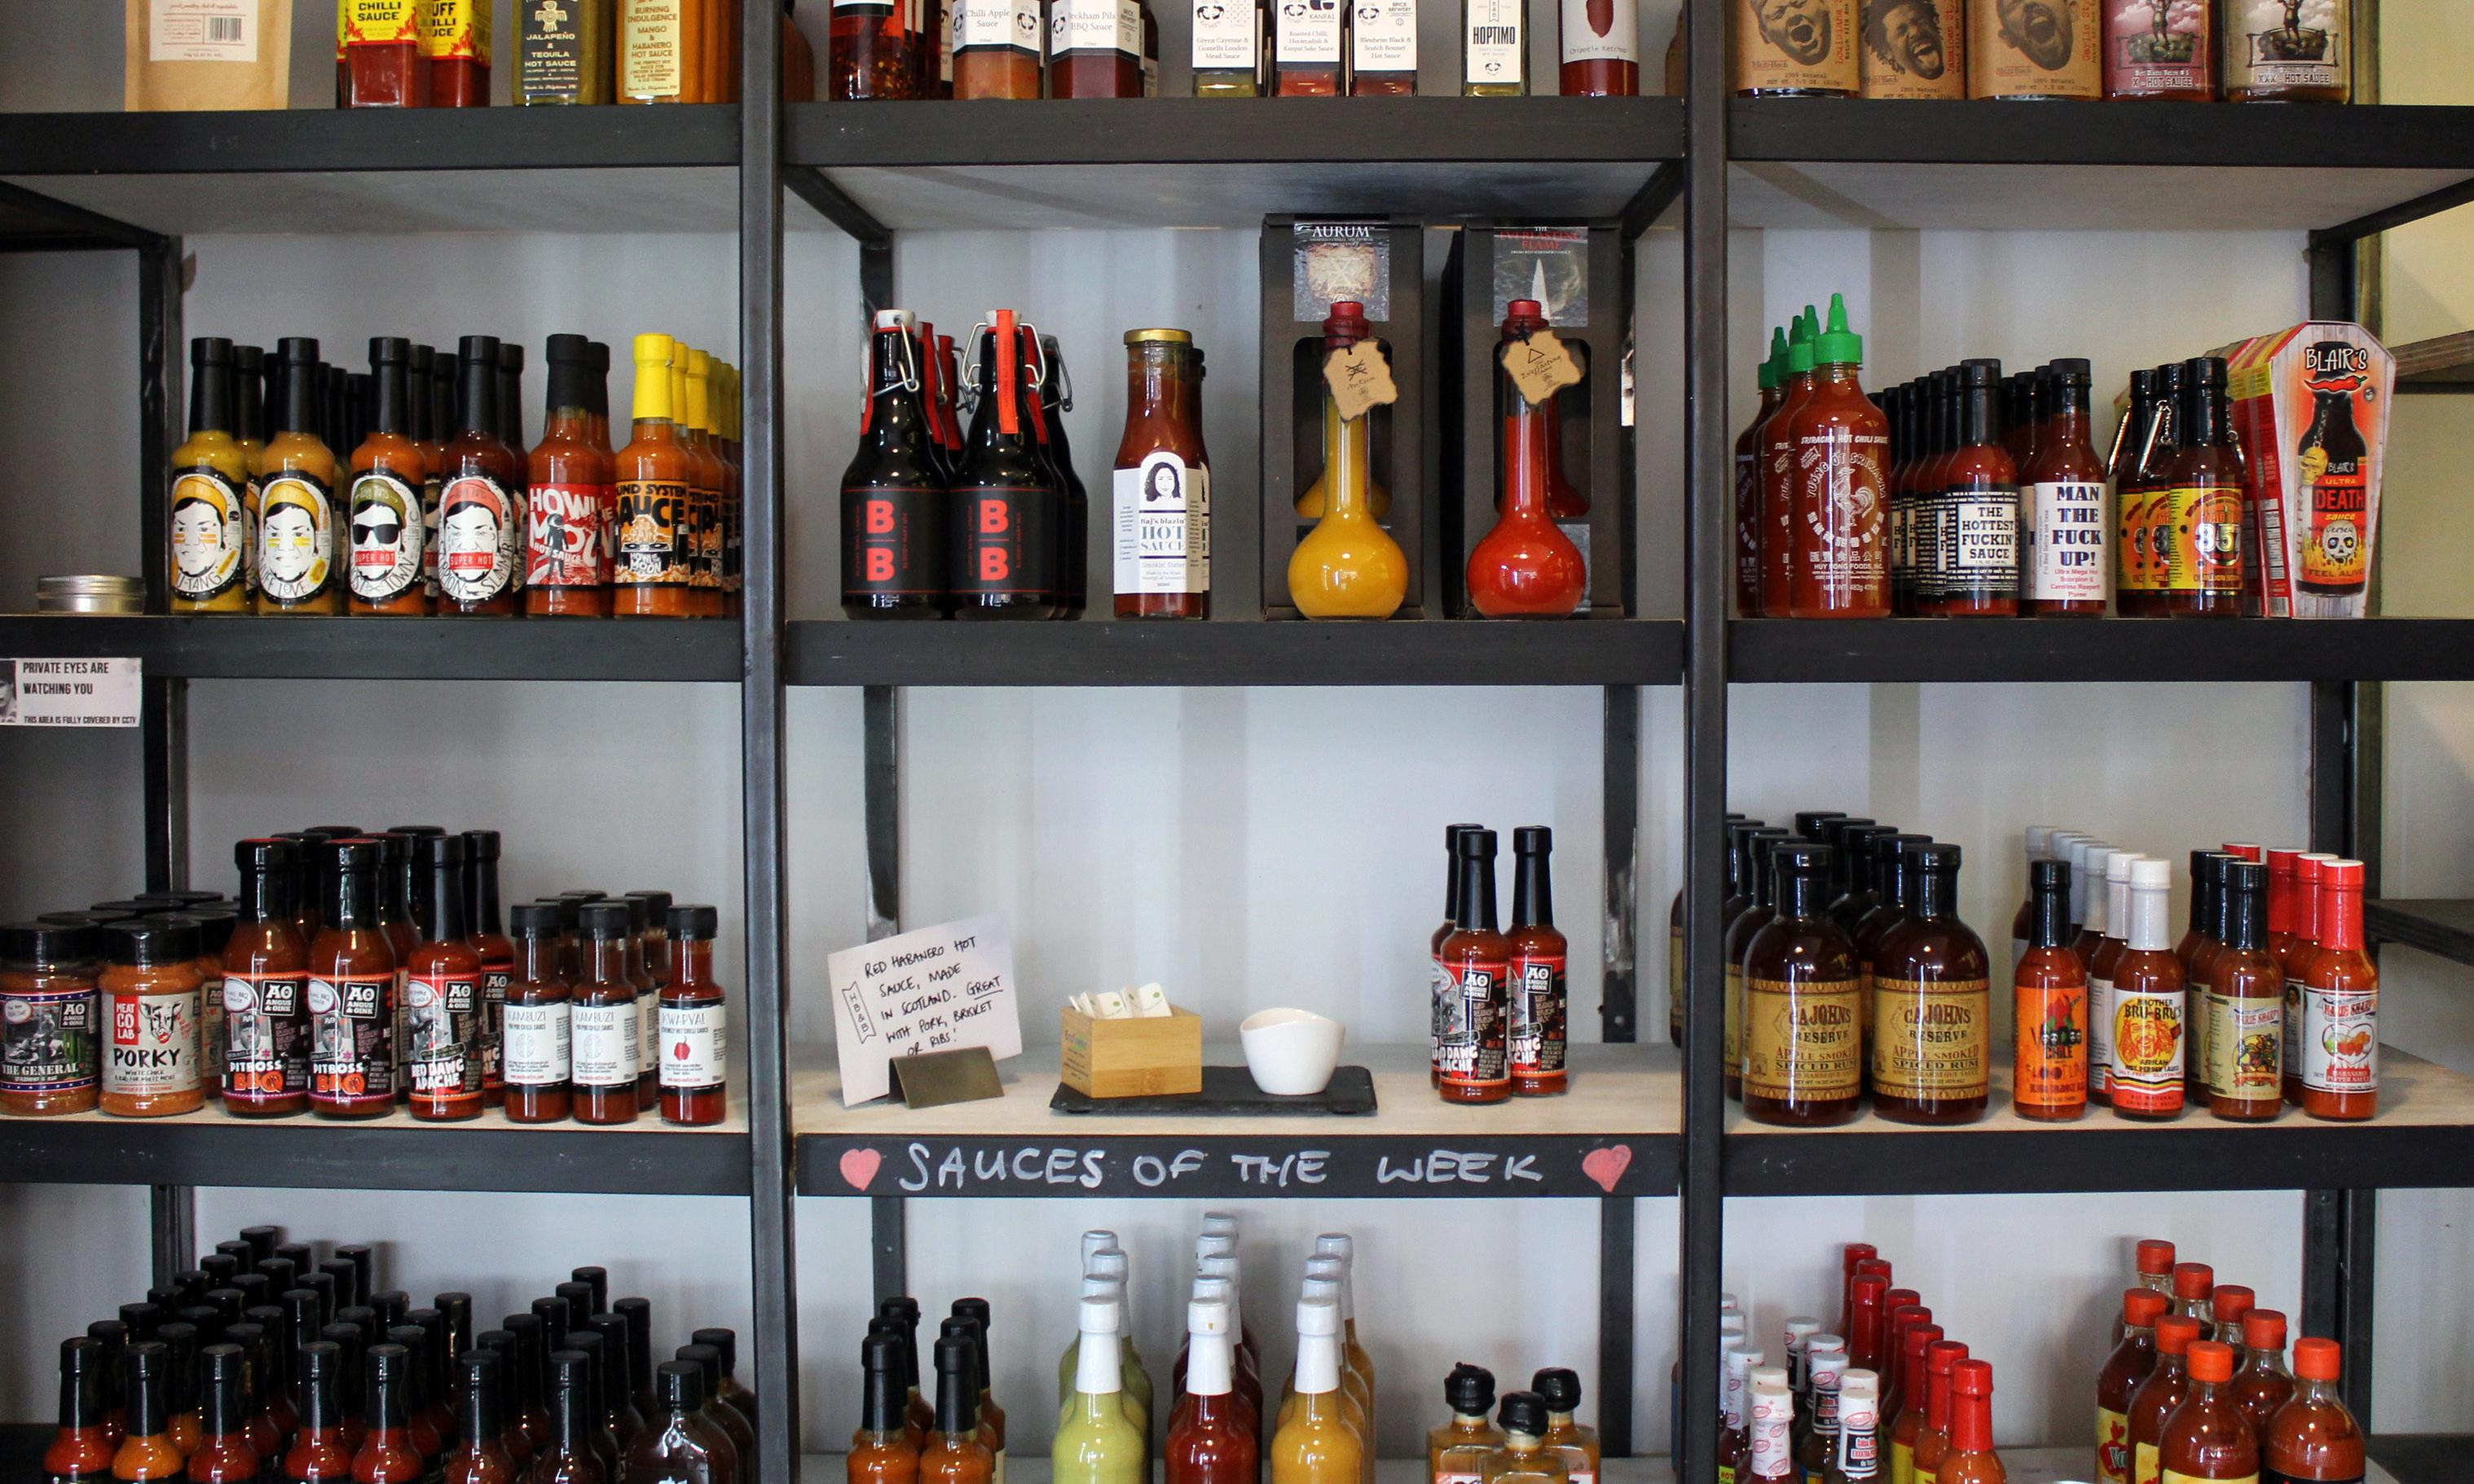 Packets of hot sauce save two people's lives in one month